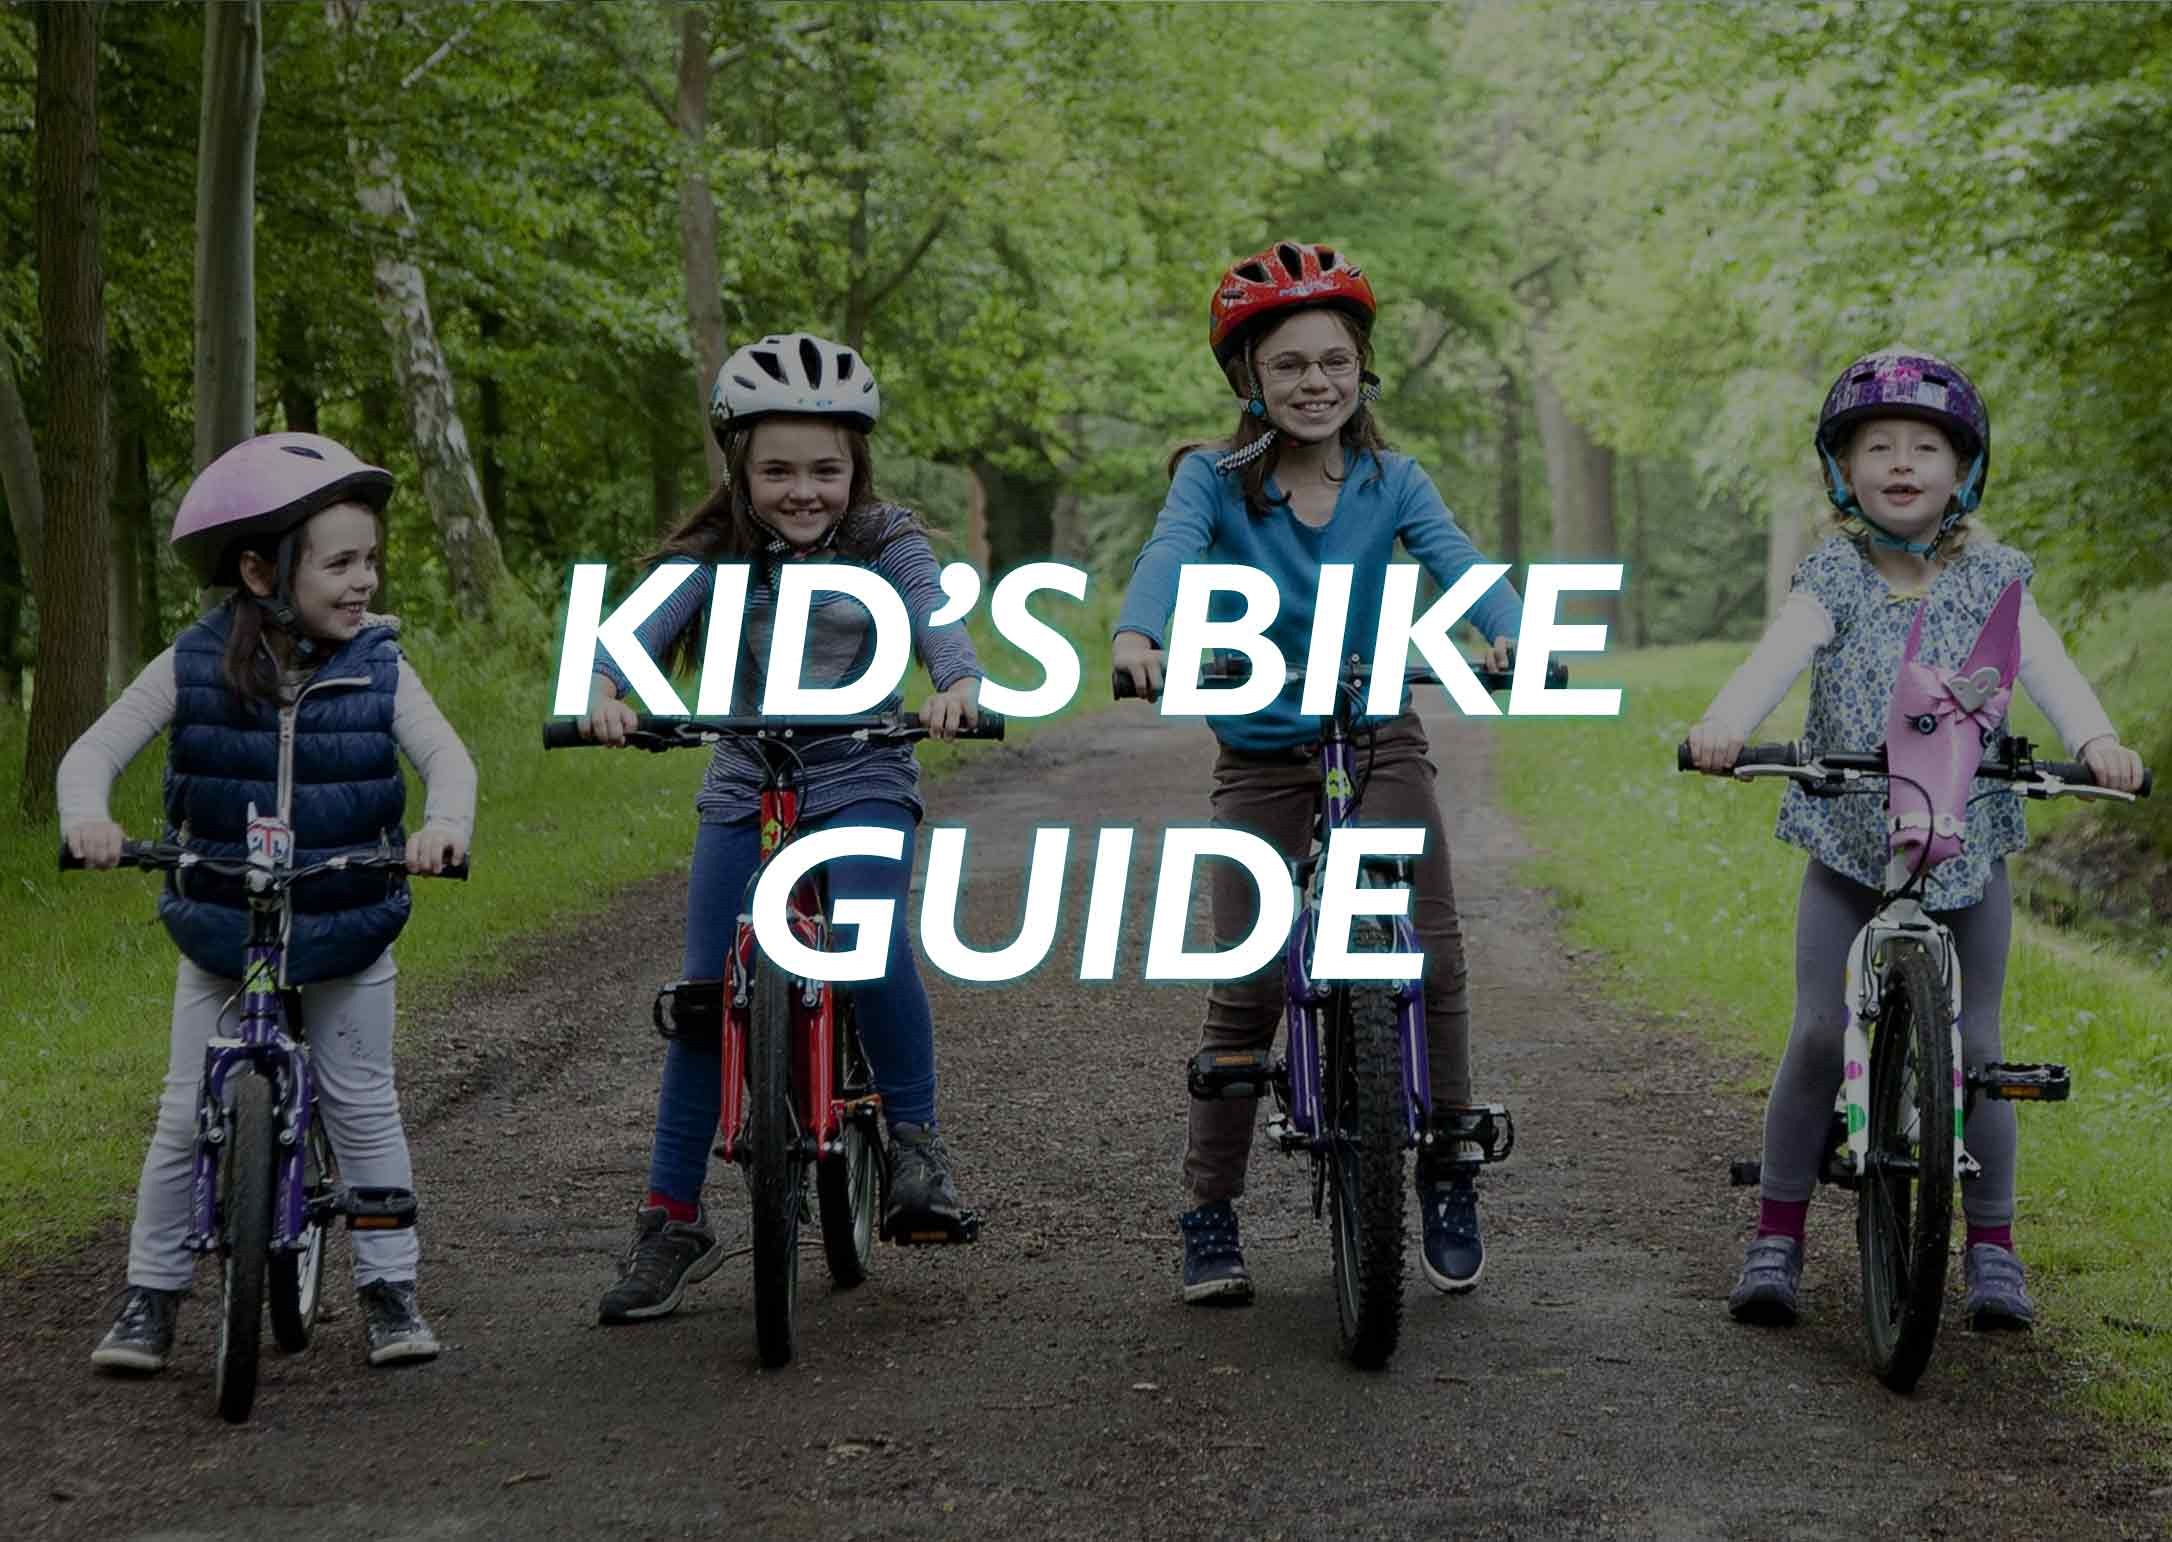 kids-bike-guide-tile